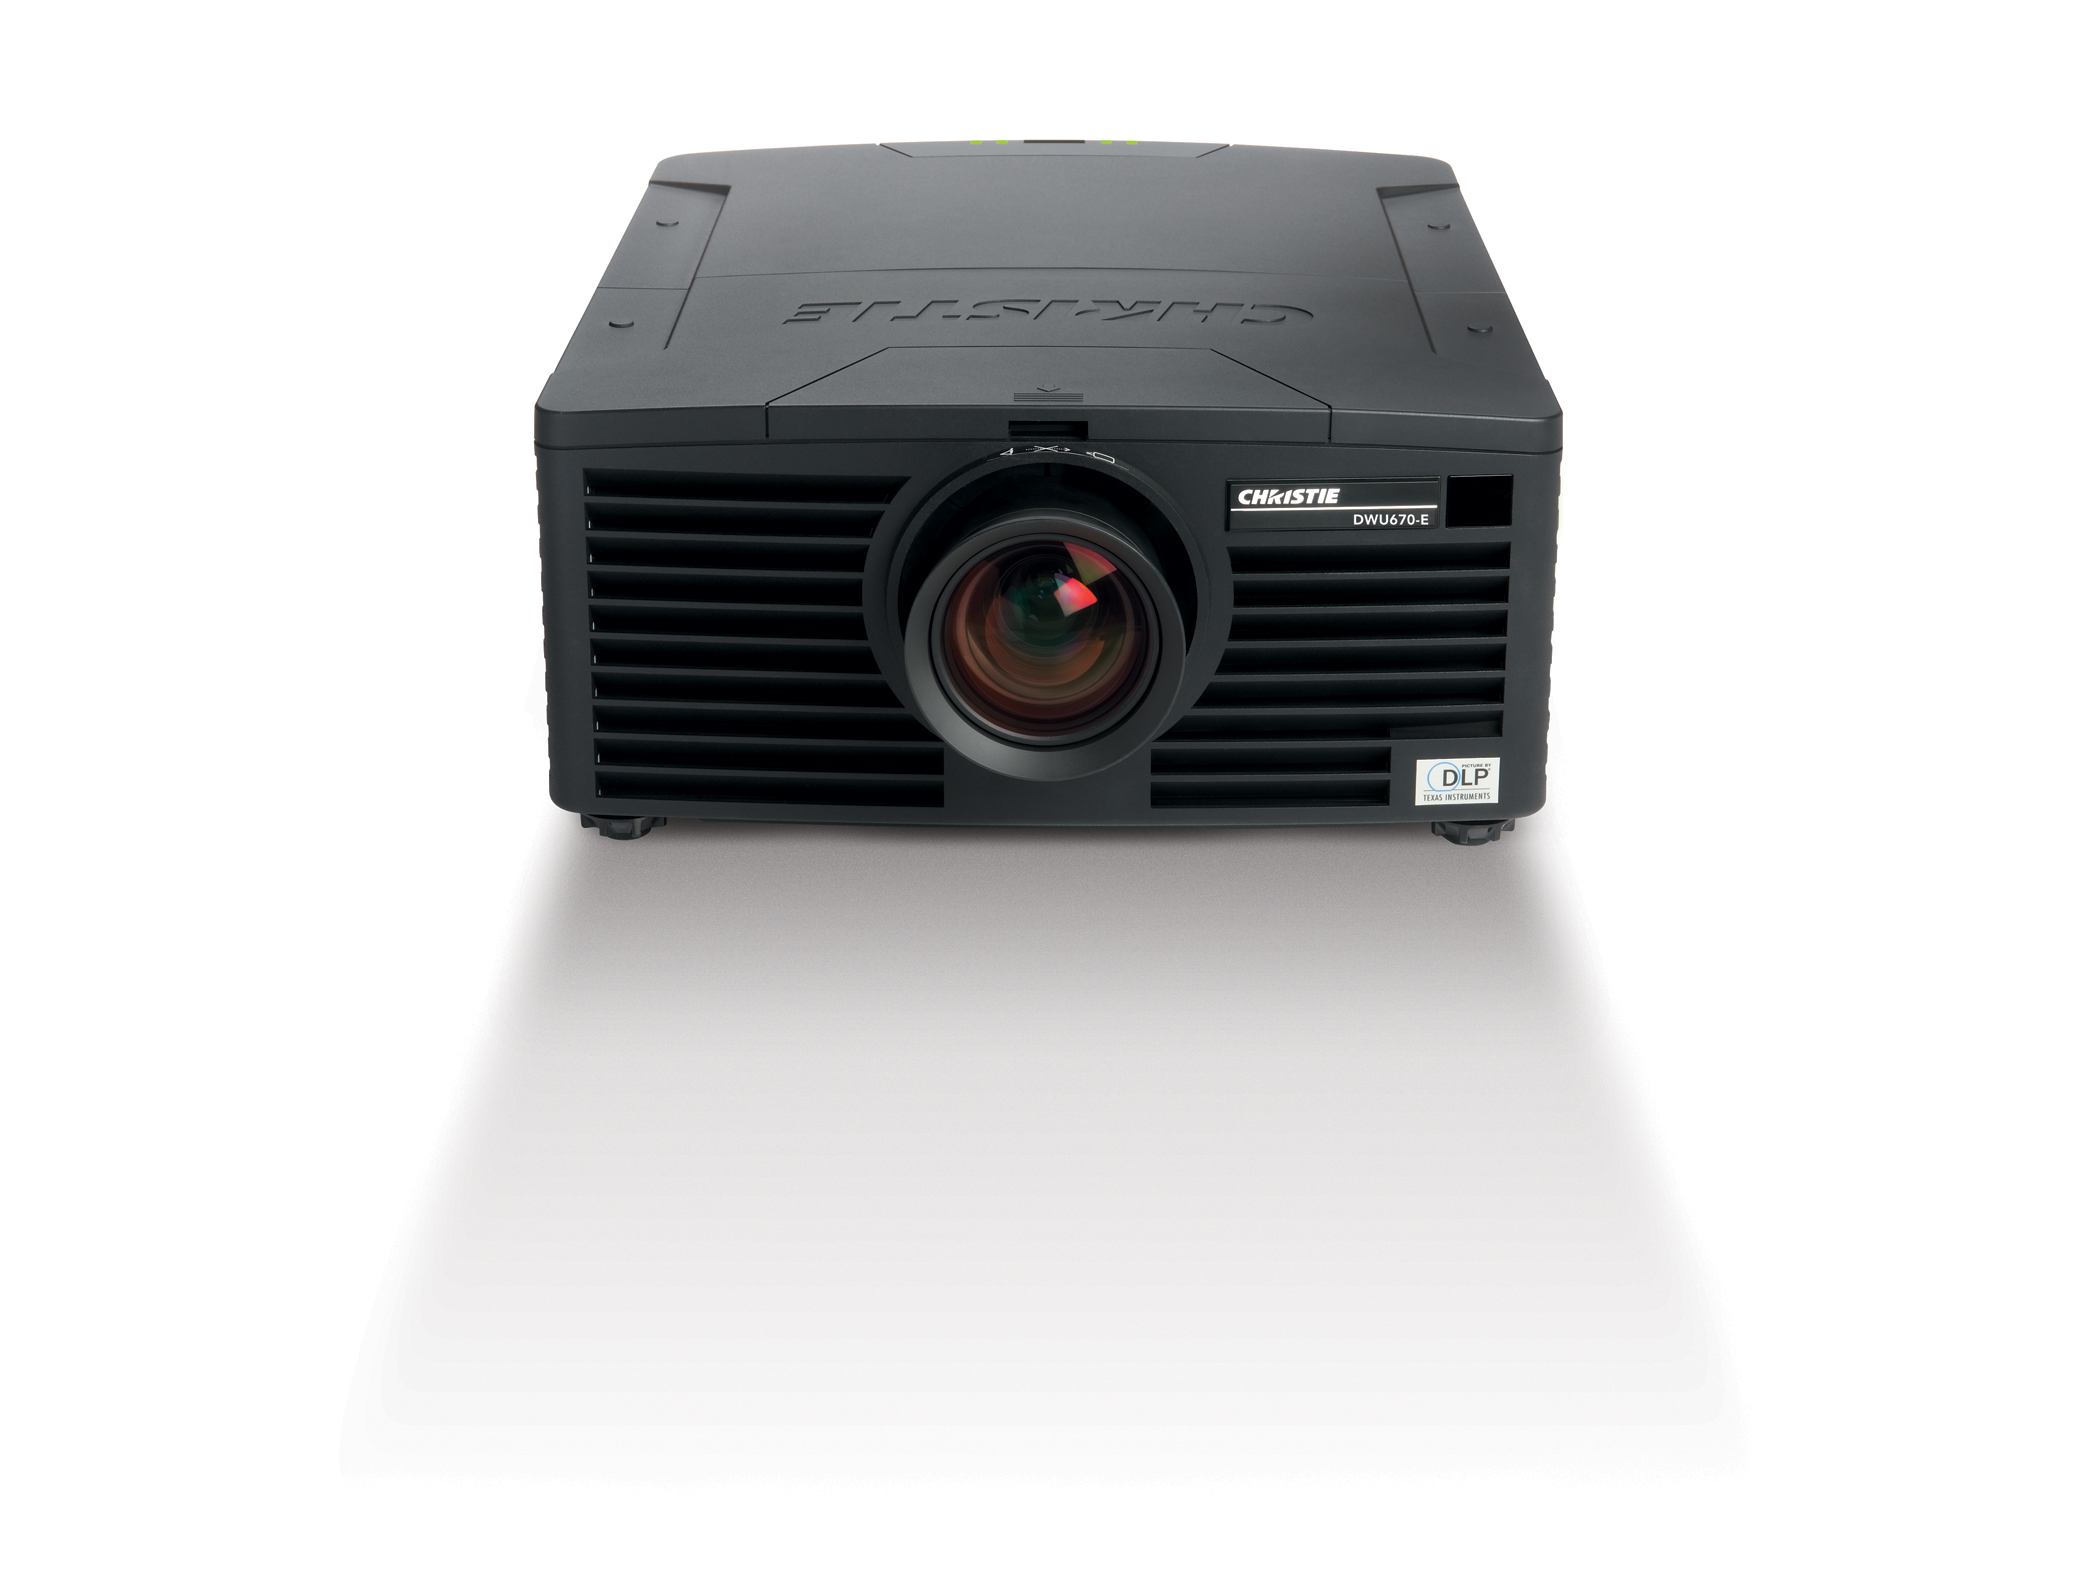 /globalassets/.catalog/products/images/christie-dwu670-e/gallery/christie-dwu670-e-dlp-digital-projector-high-front.jpg